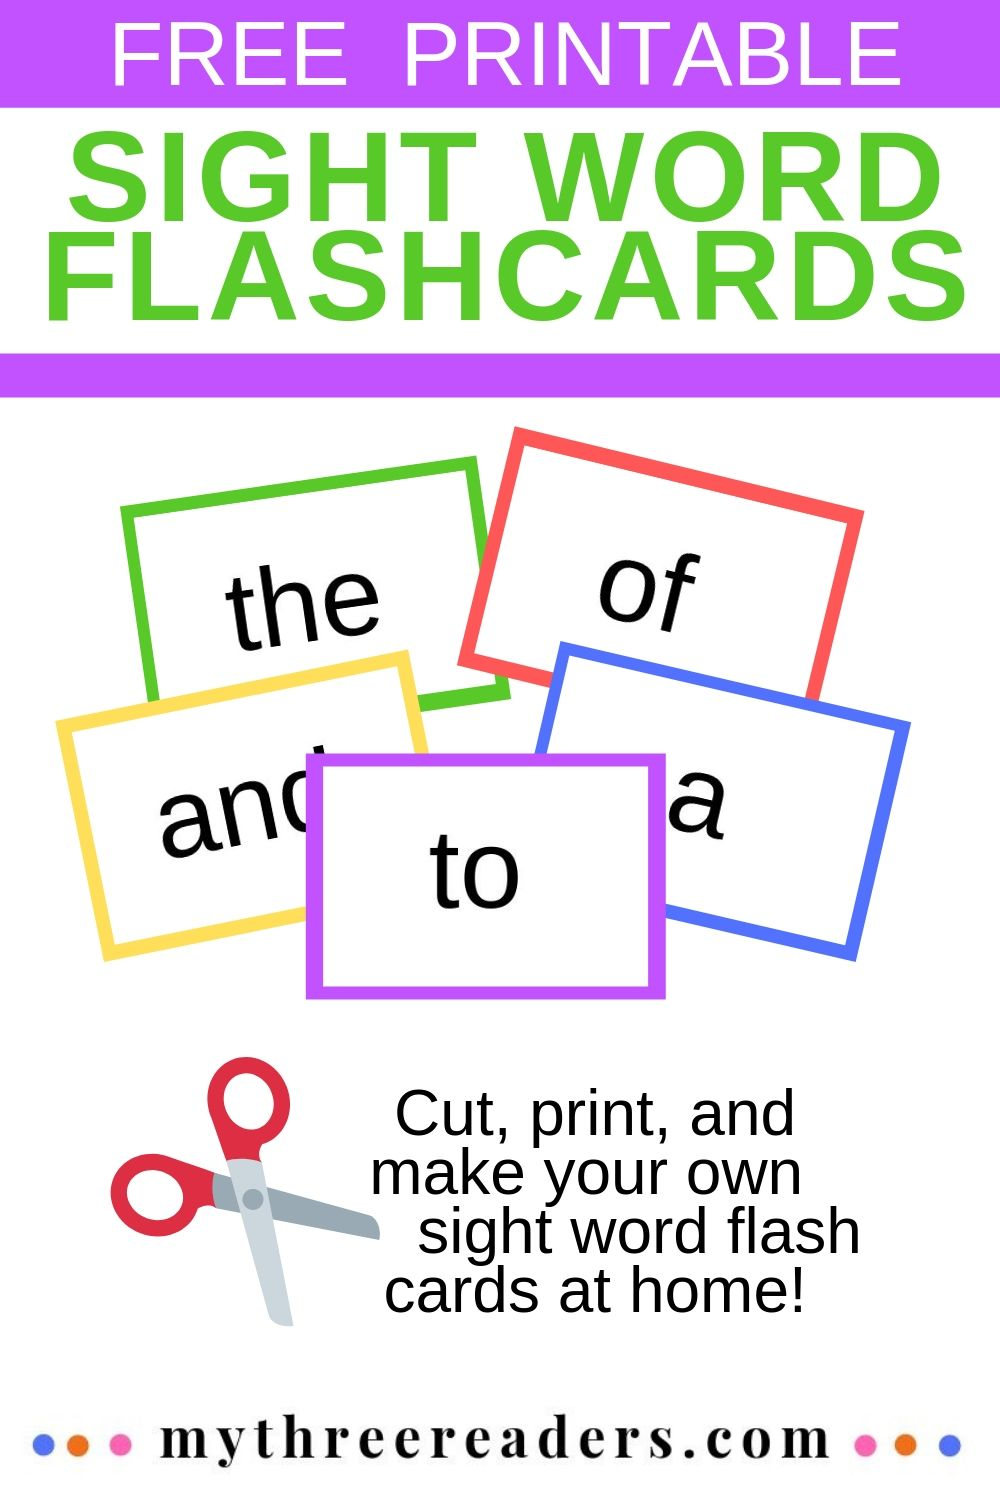 photograph regarding Printable Sight Word Flash Cards identified as Create Your Personal Sight Term Flash Playing cards - Free of charge, Printable for Your self!